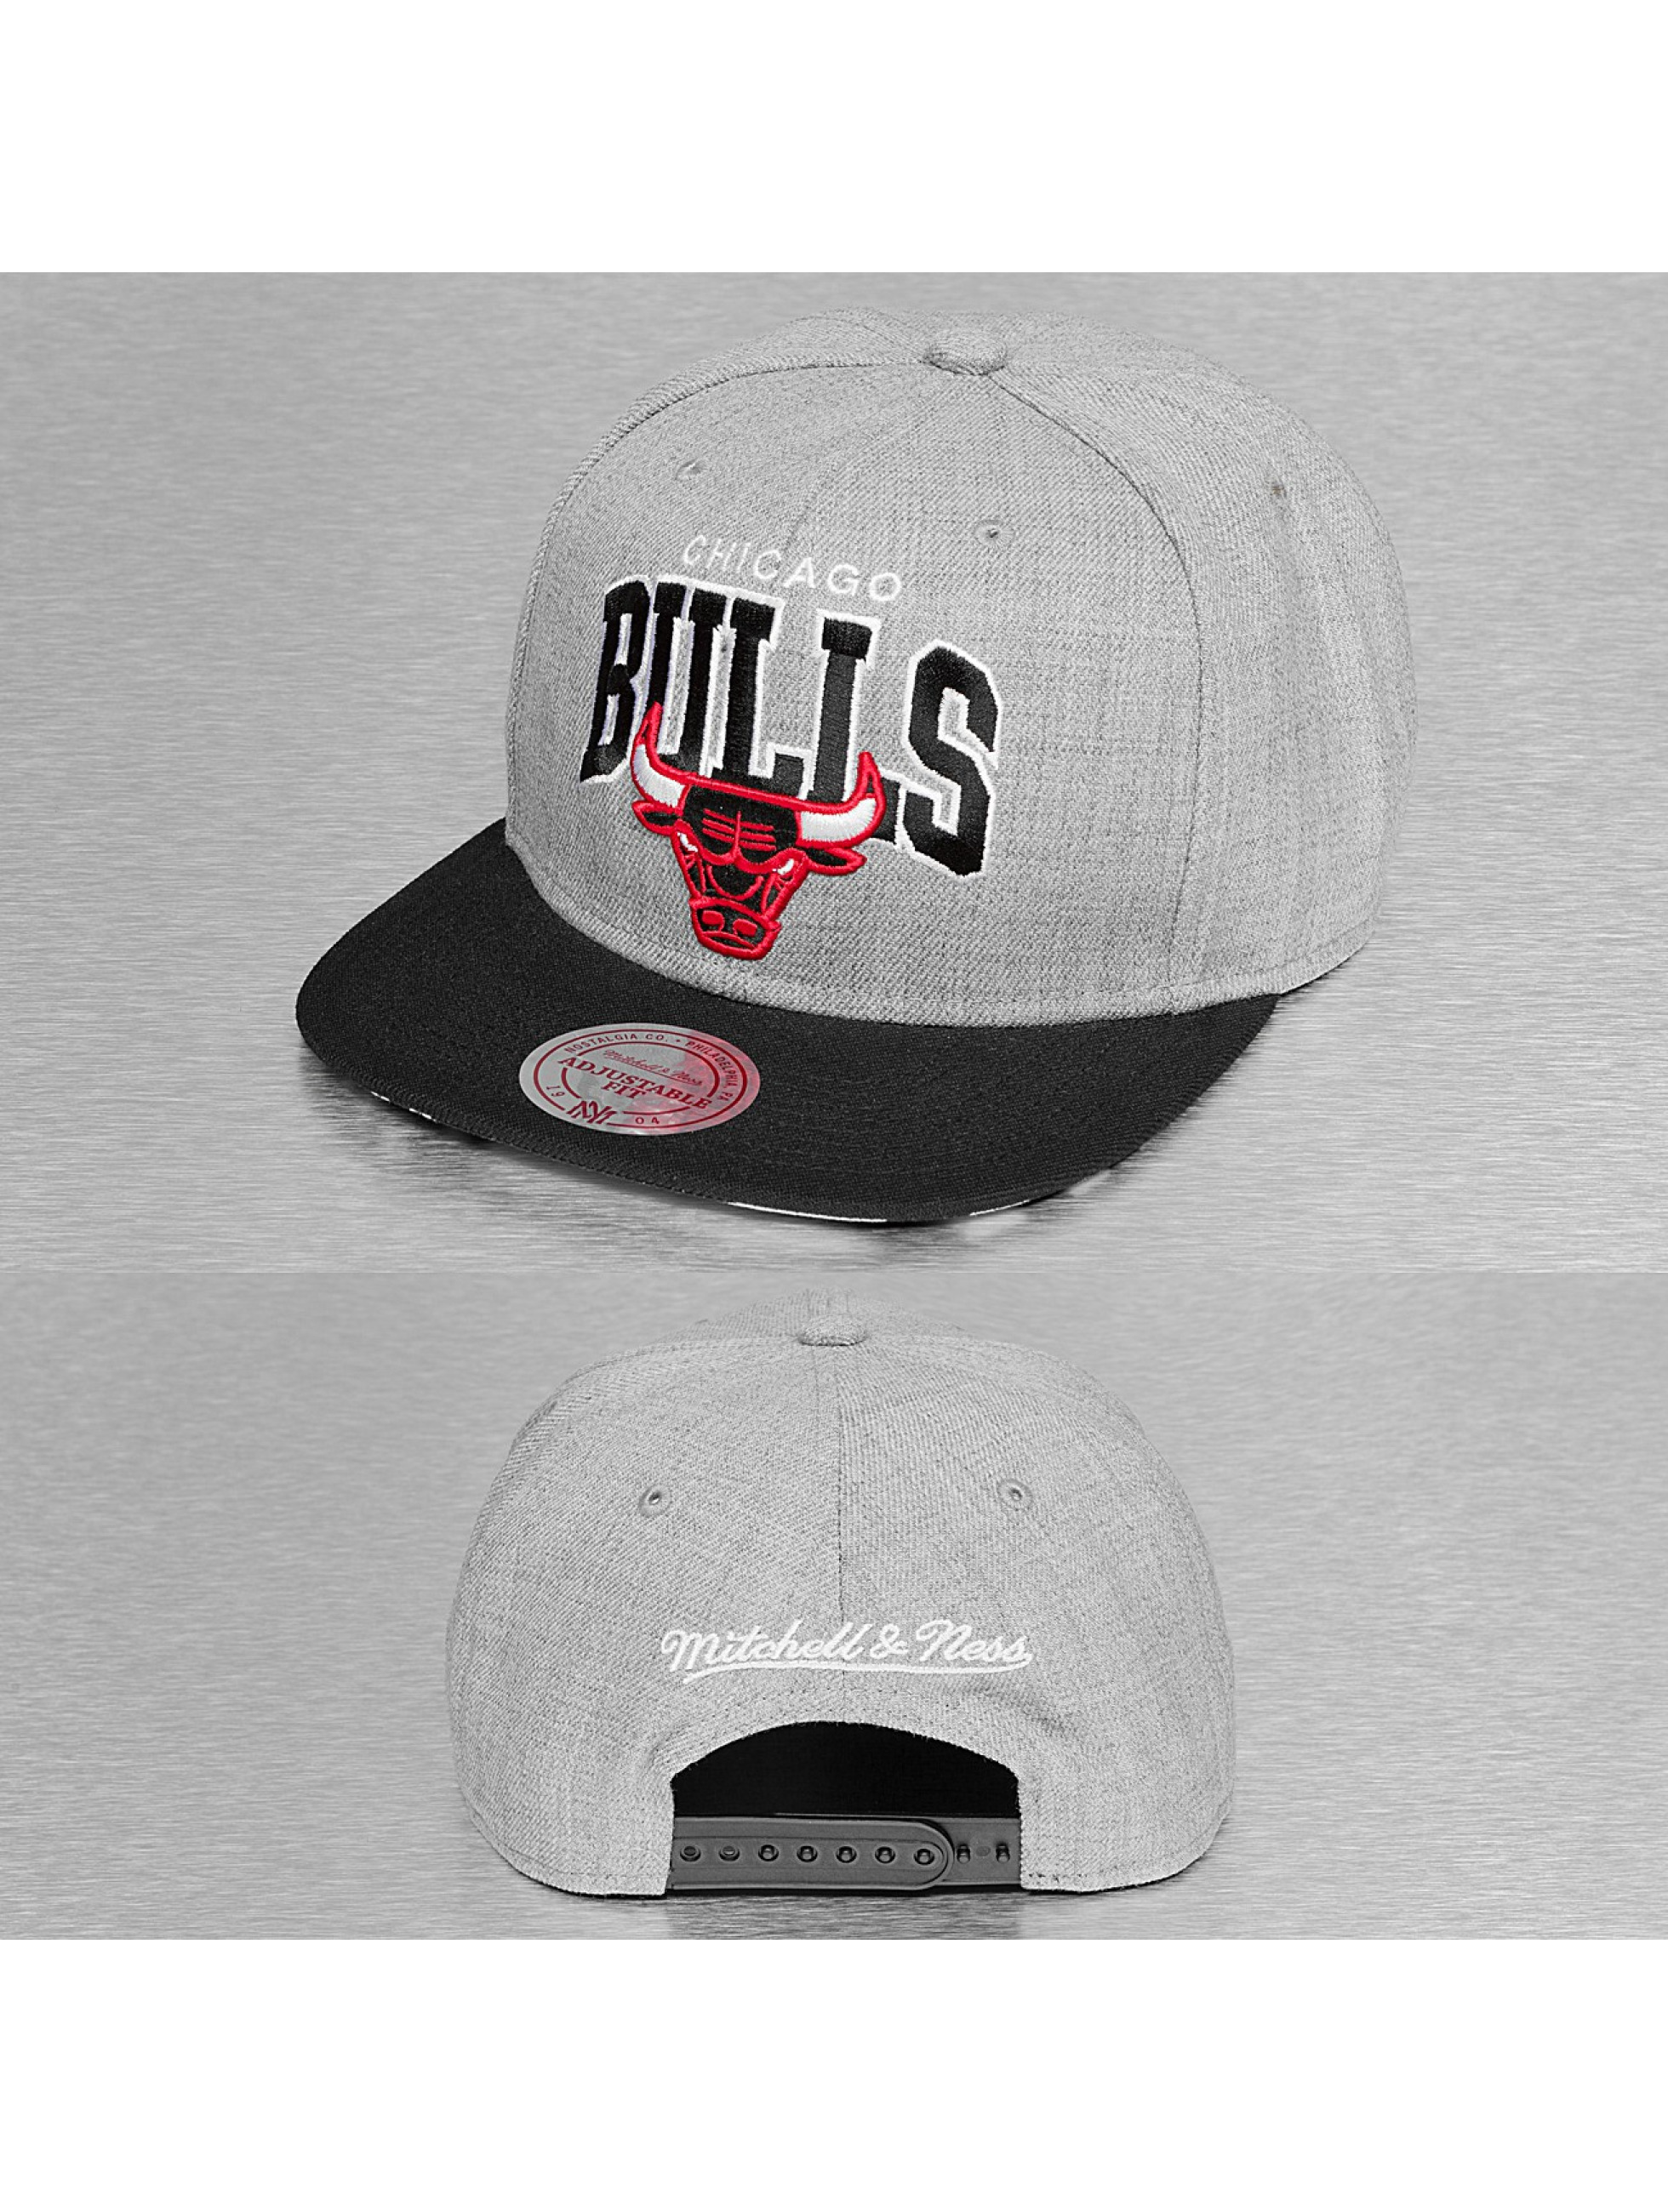 Mitchell & Ness Snapback Cap Black USA Chicago Bulls grau